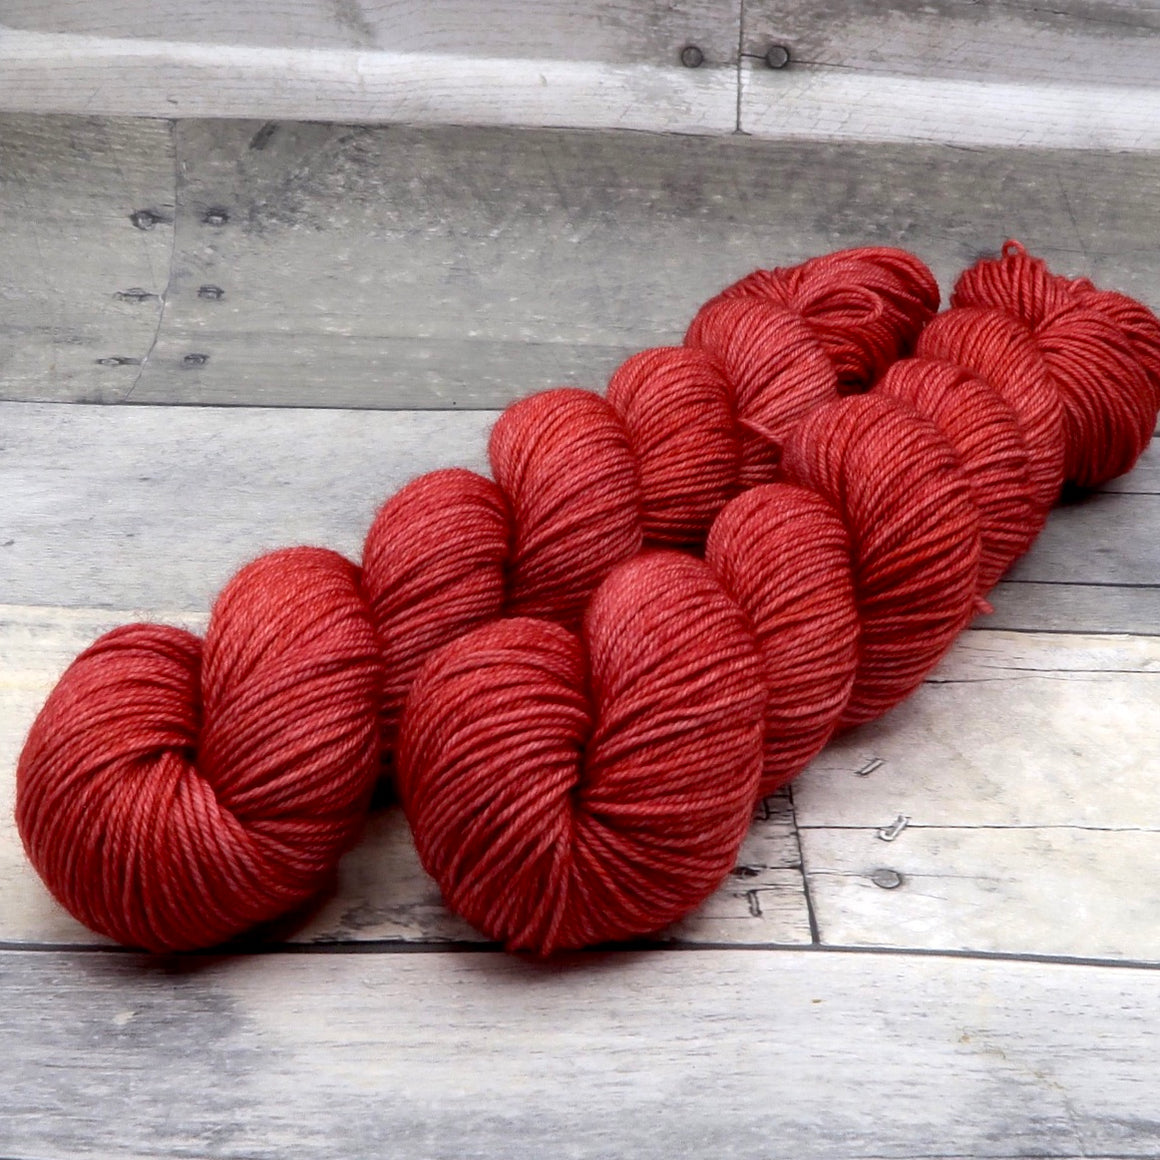 Muted Oxblood - 50g - Tonal Yarn (Everyday Sock)